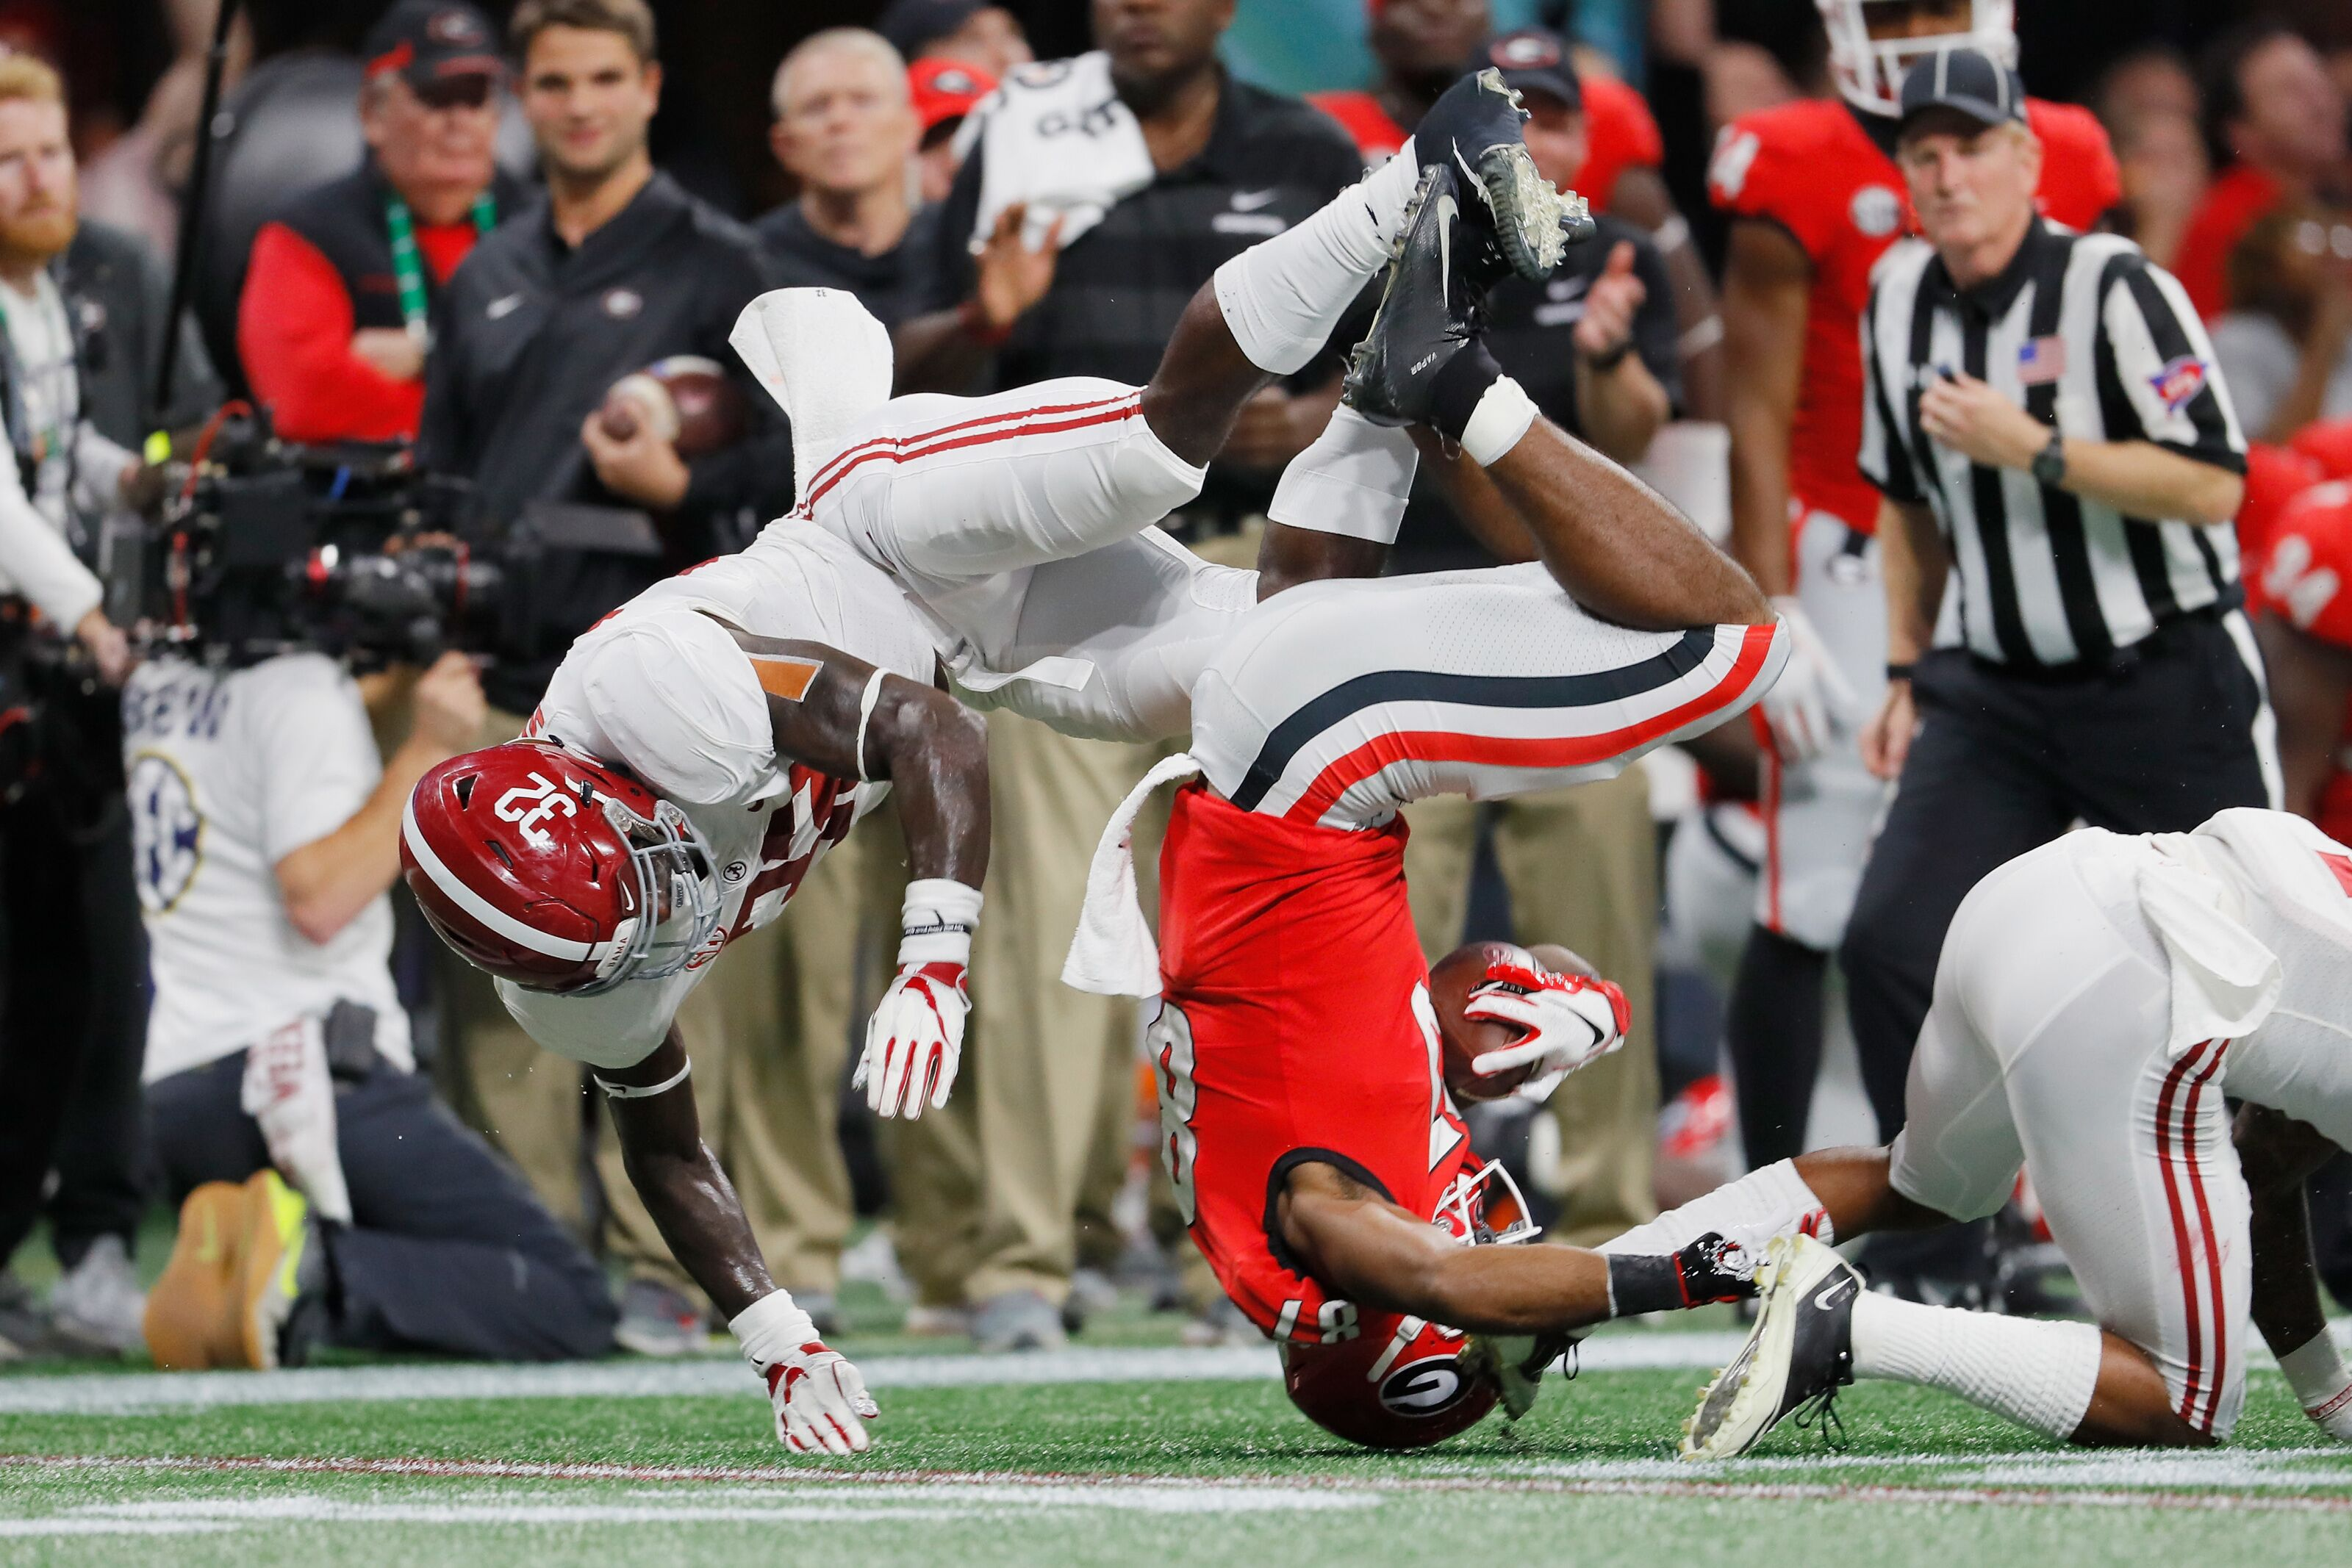 Clemson Football: A Theory for why UGA was the toughest game for Bama